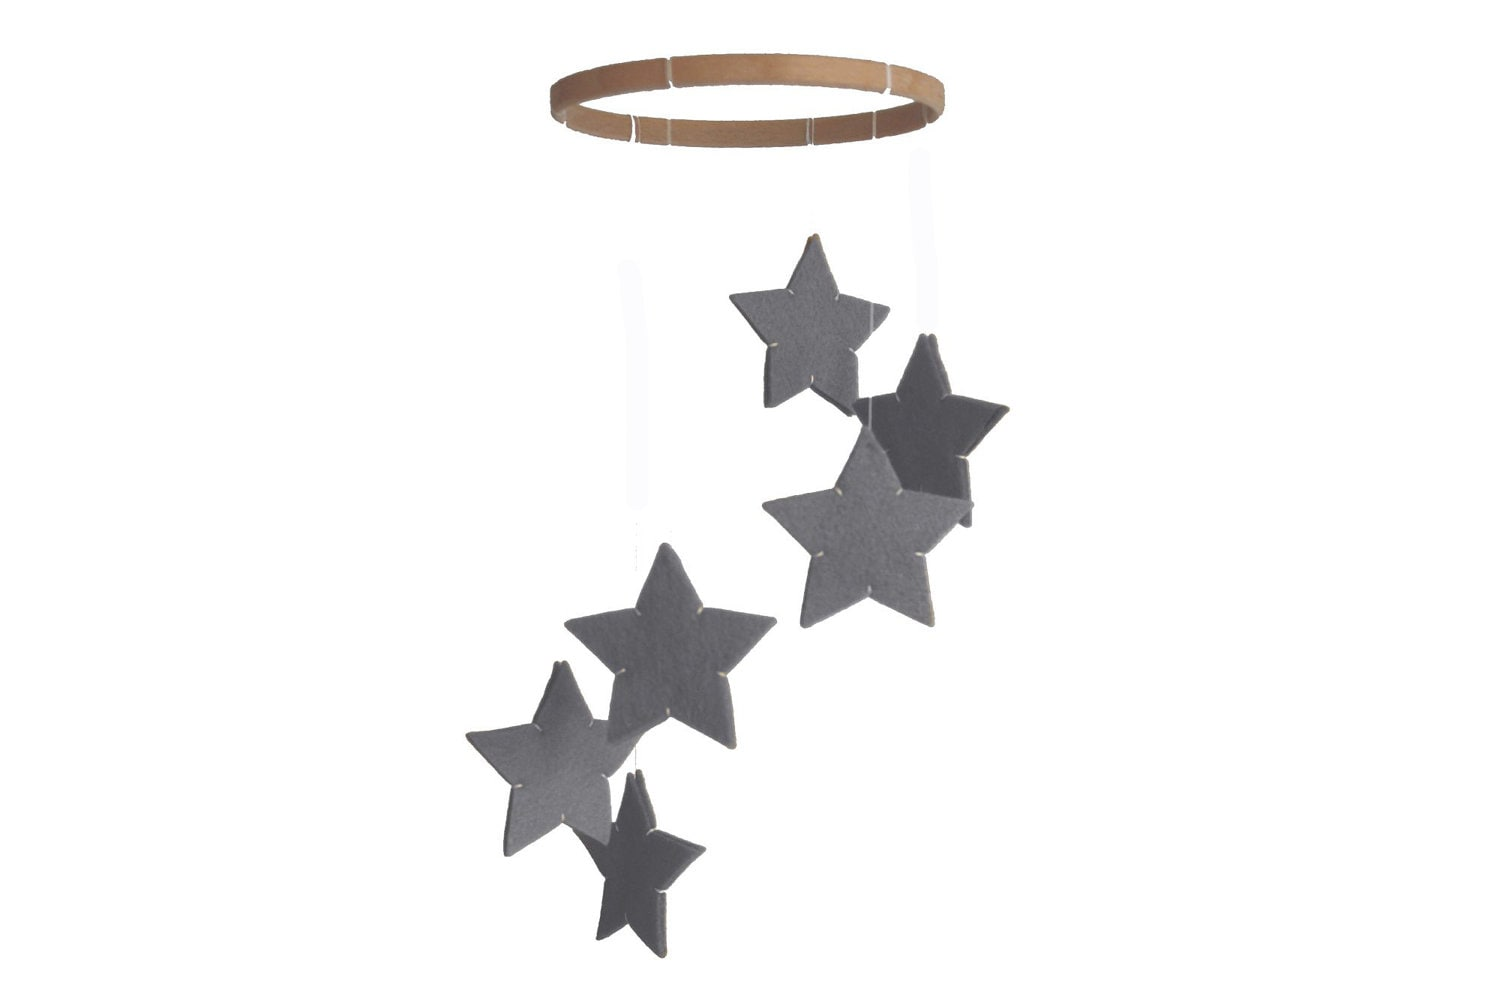 Silver Star Mobile - Gray Grey - Modern Baby Crib Mobile - Nursery Decor - littlenestbox